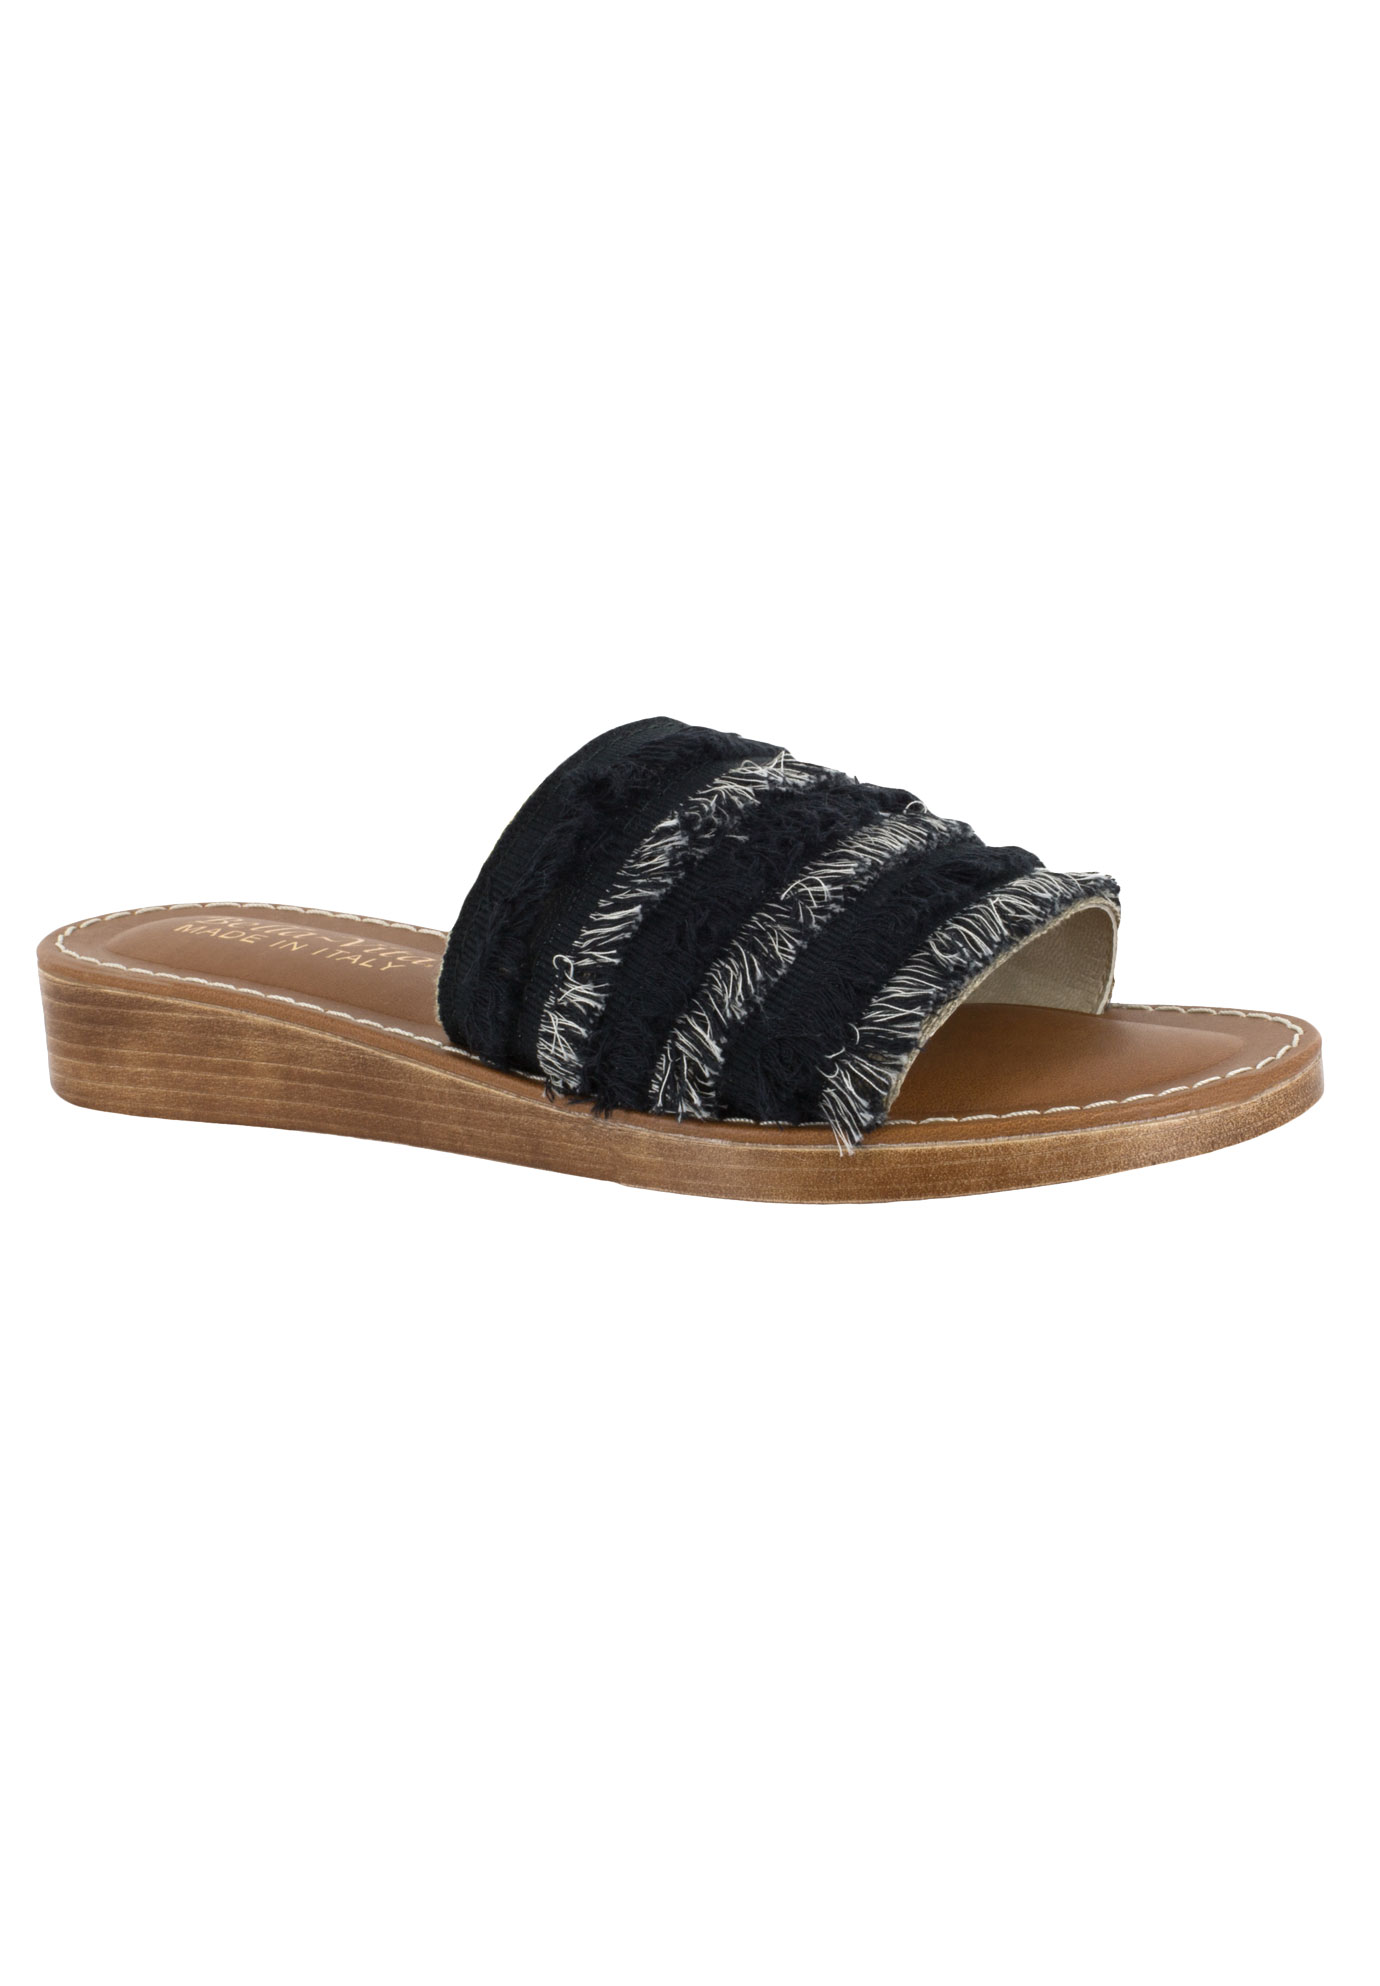 Bella Vita Slide Sandals - Abi-Italy free shipping for nice shopping online buy cheap reliable official sale online outlet the cheapest F4eMEOPk6